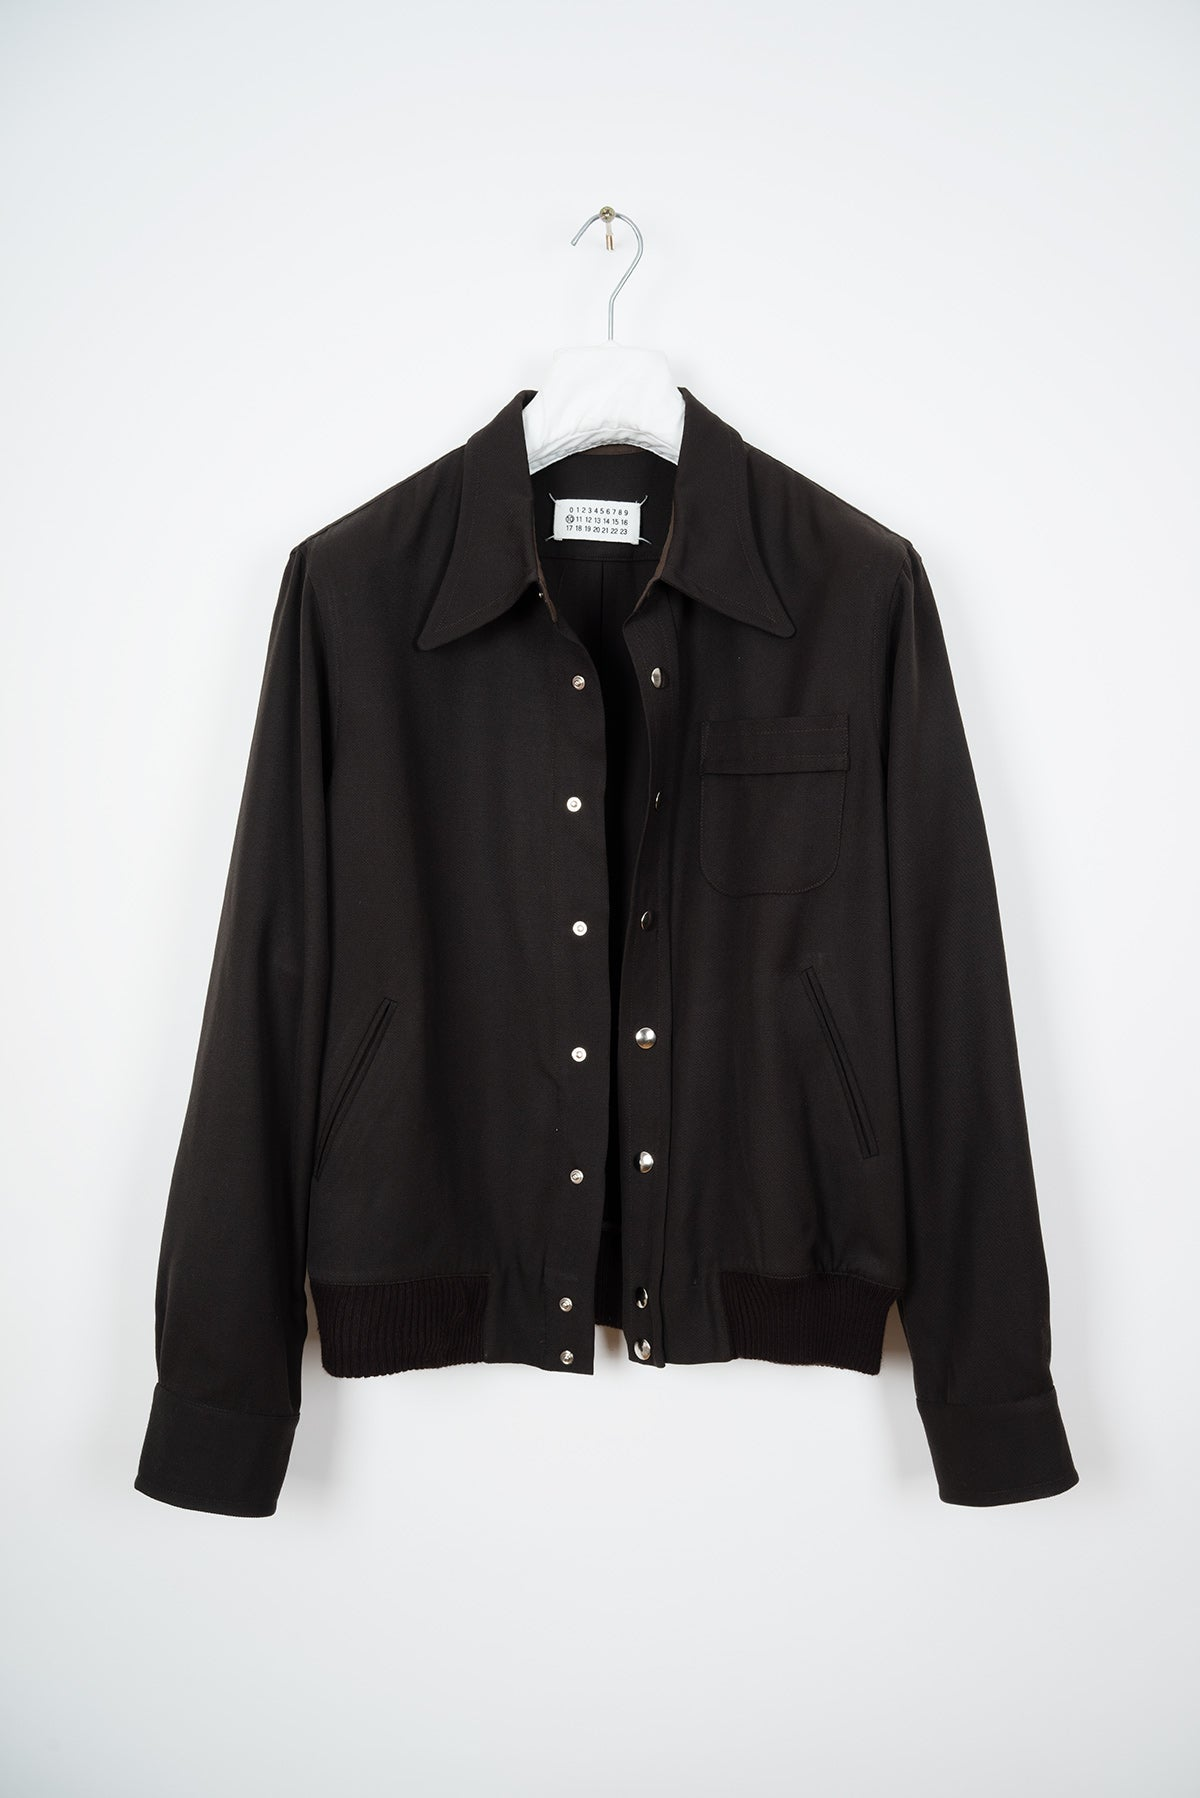 2001 S/S TWILL WOOL BLOUSON WITH EMPHASIZED COLLAR